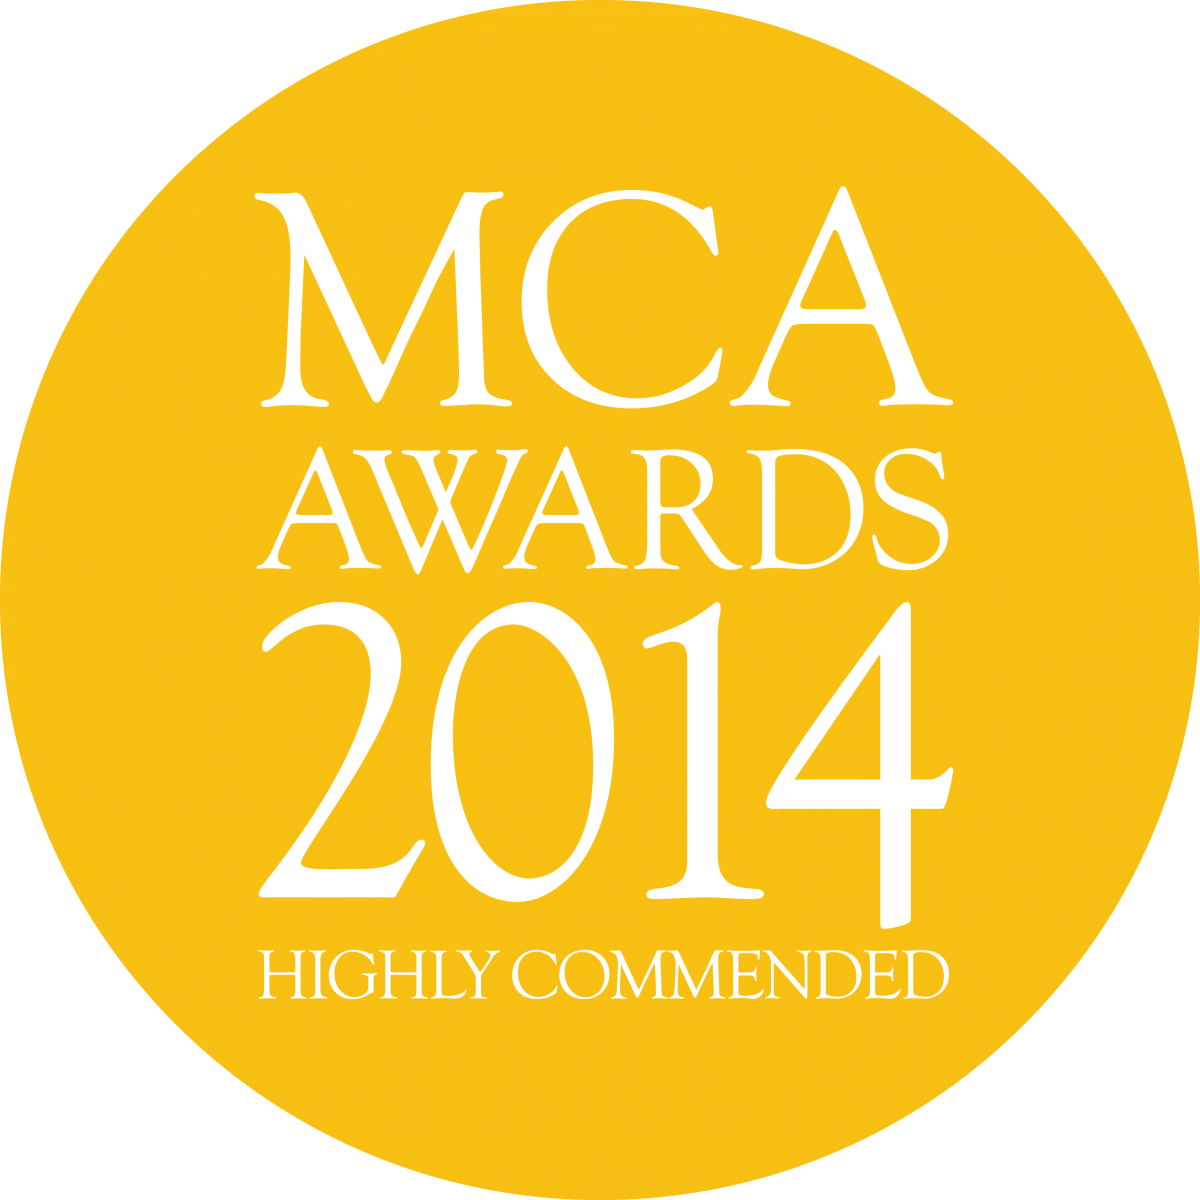 MCA Awards 2014 - highly commended